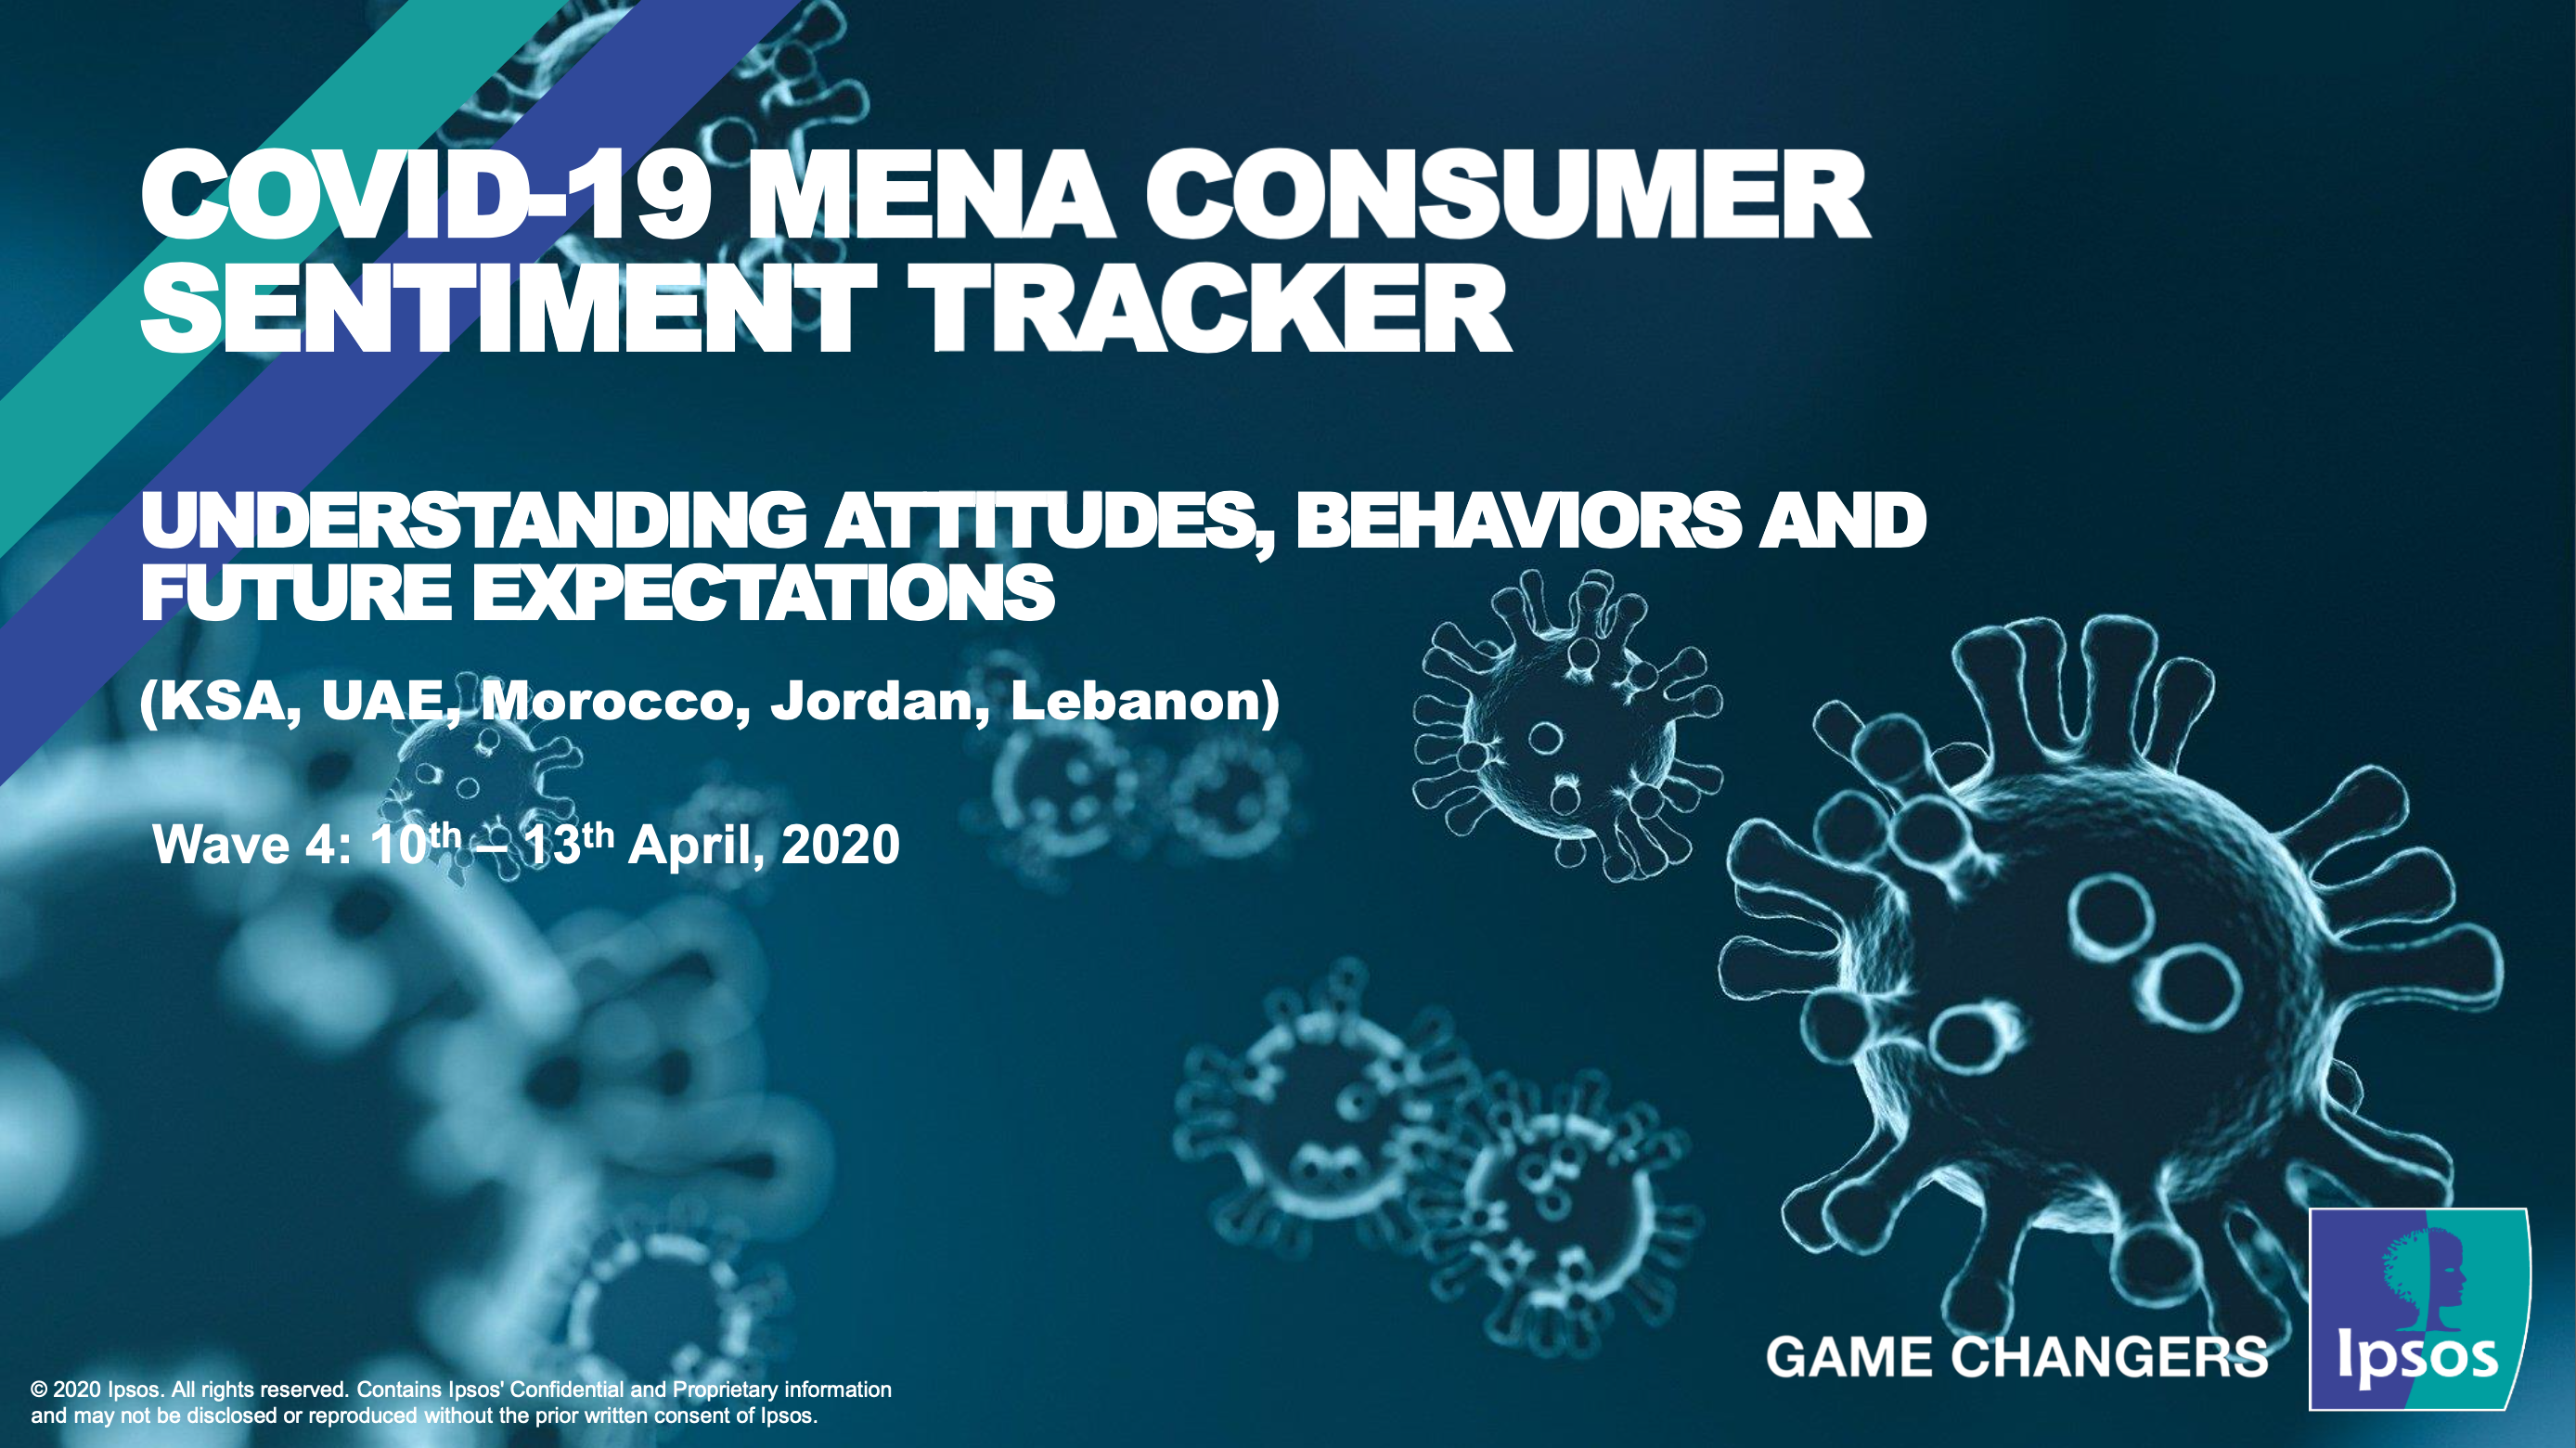 ipsoss-latest-report-highlights-key-concerns-of-residents-of-mena